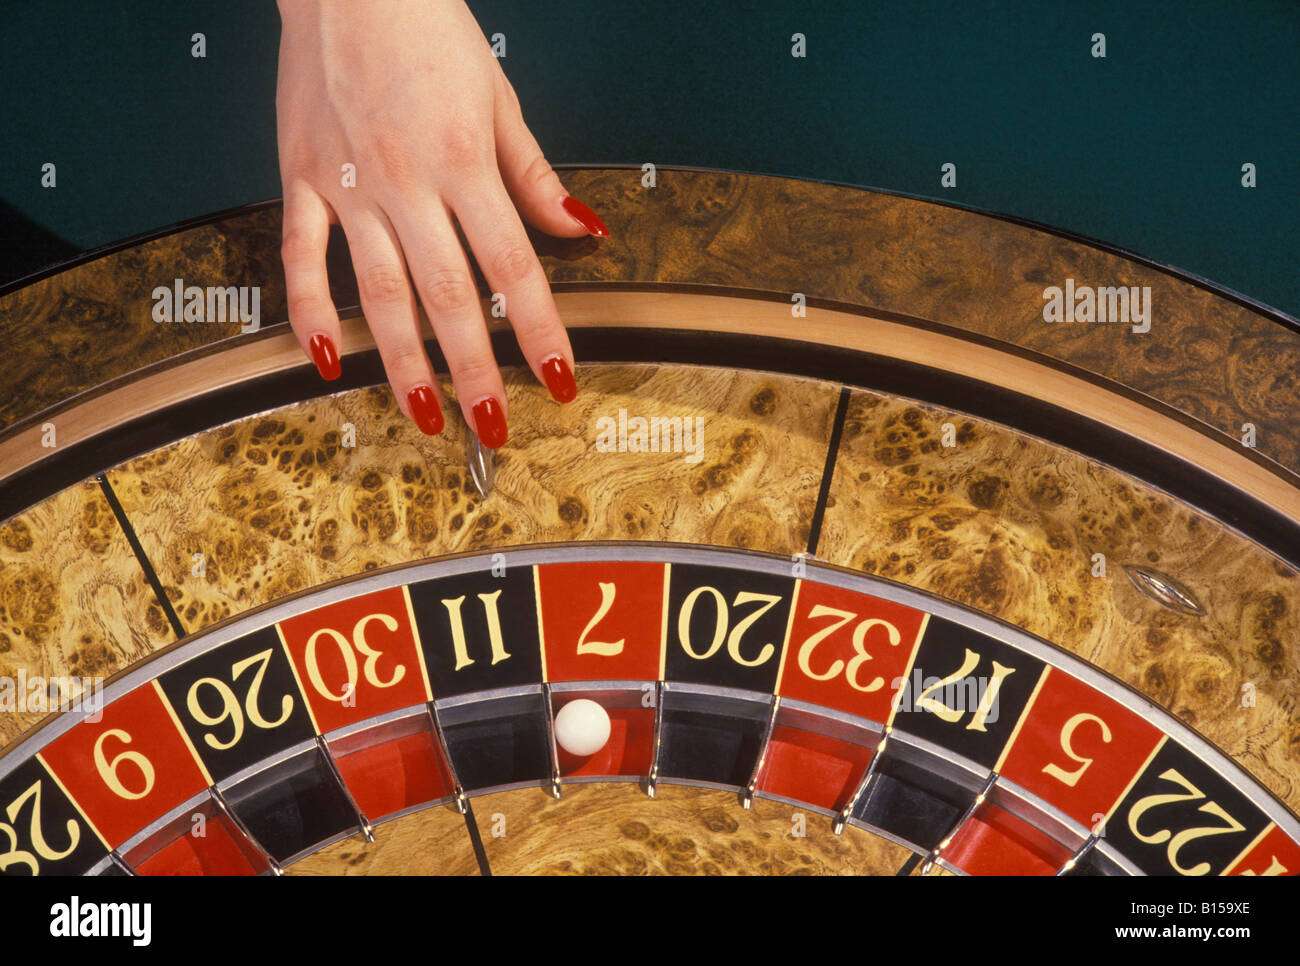 A female gambler takes a chance at the roulette wheel in a casino. - Stock Image